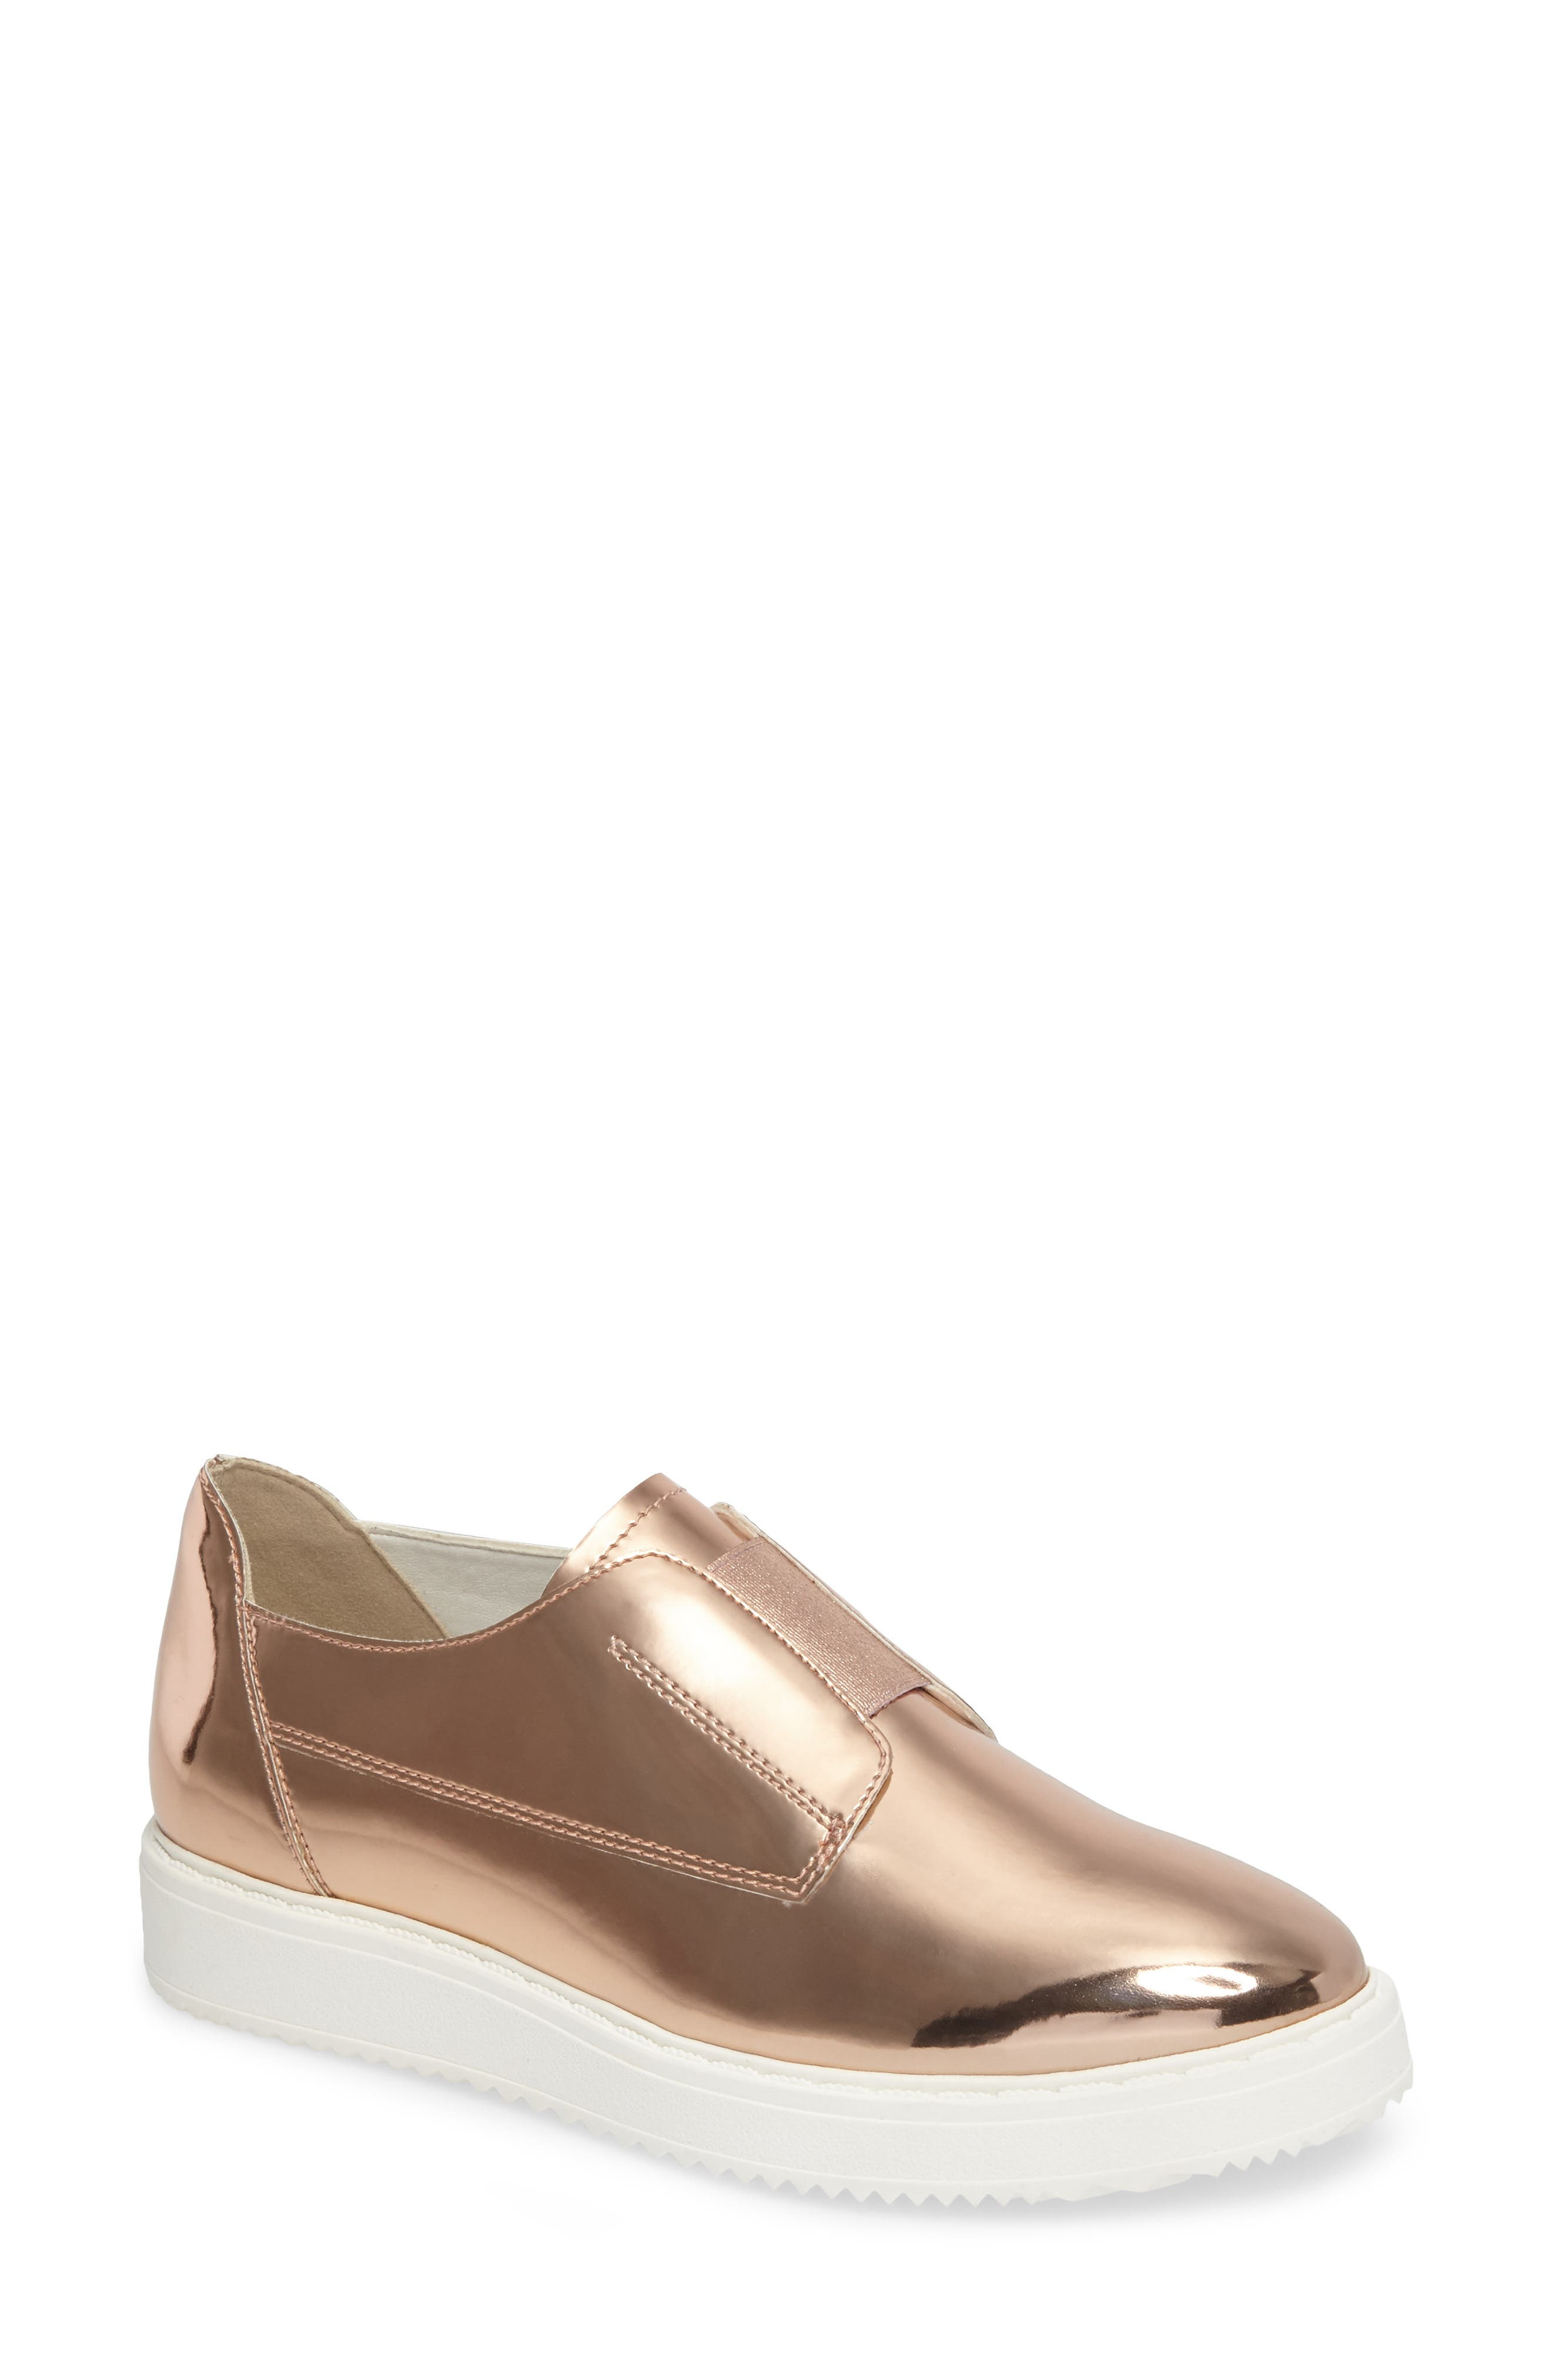 Trist Slip-On Metallic Sneaker,                             Main thumbnail 1, color,                             Rosegold Metallic Faux Leather